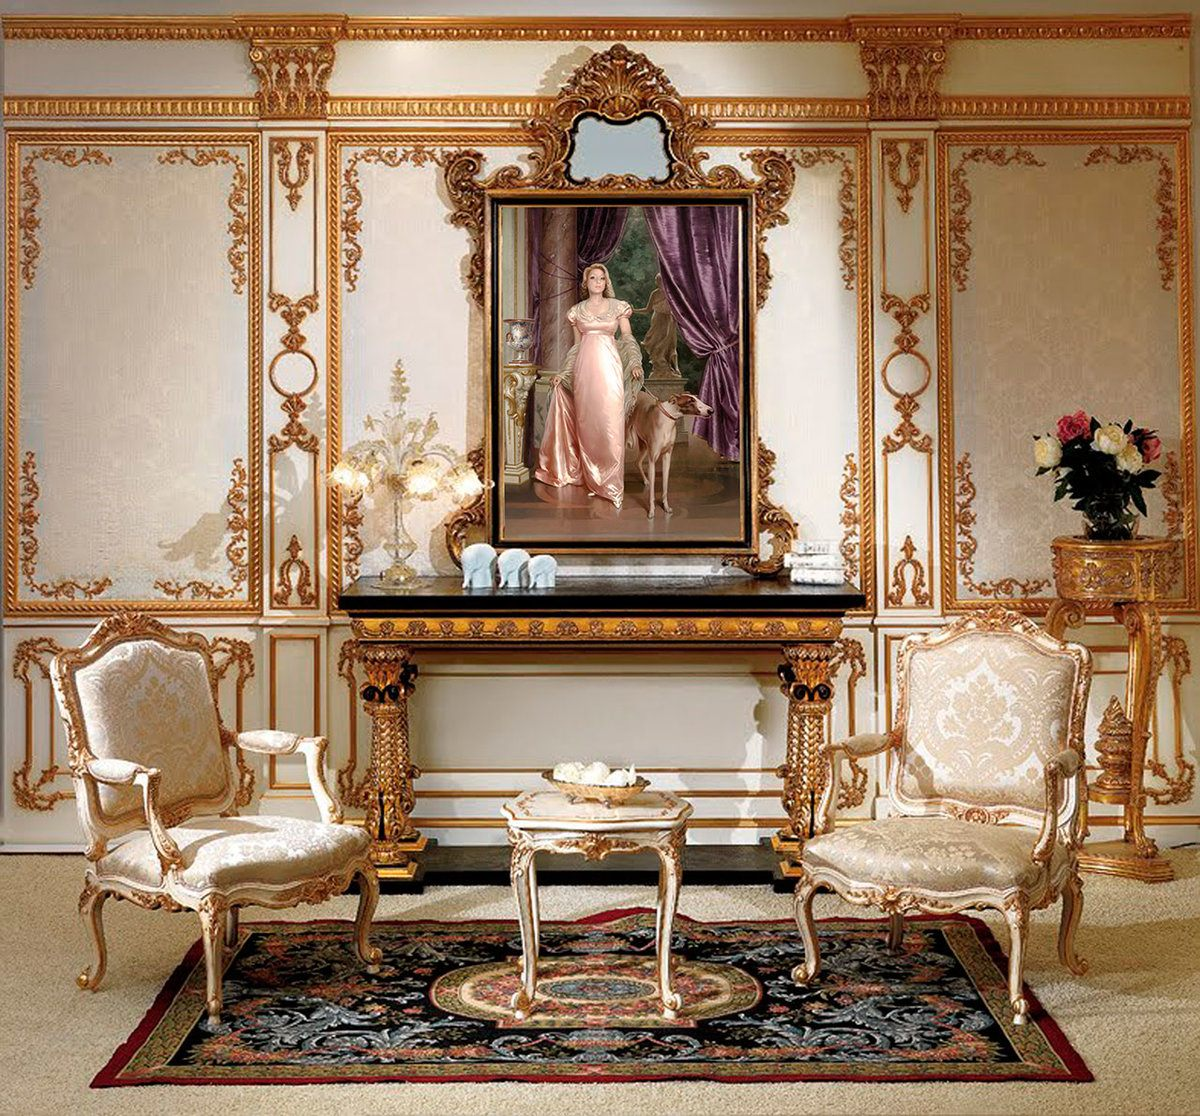 Baroque Living Room: Tips for Creating Chic Room at Home. Artificial fireplace and decorative gilded fretwork